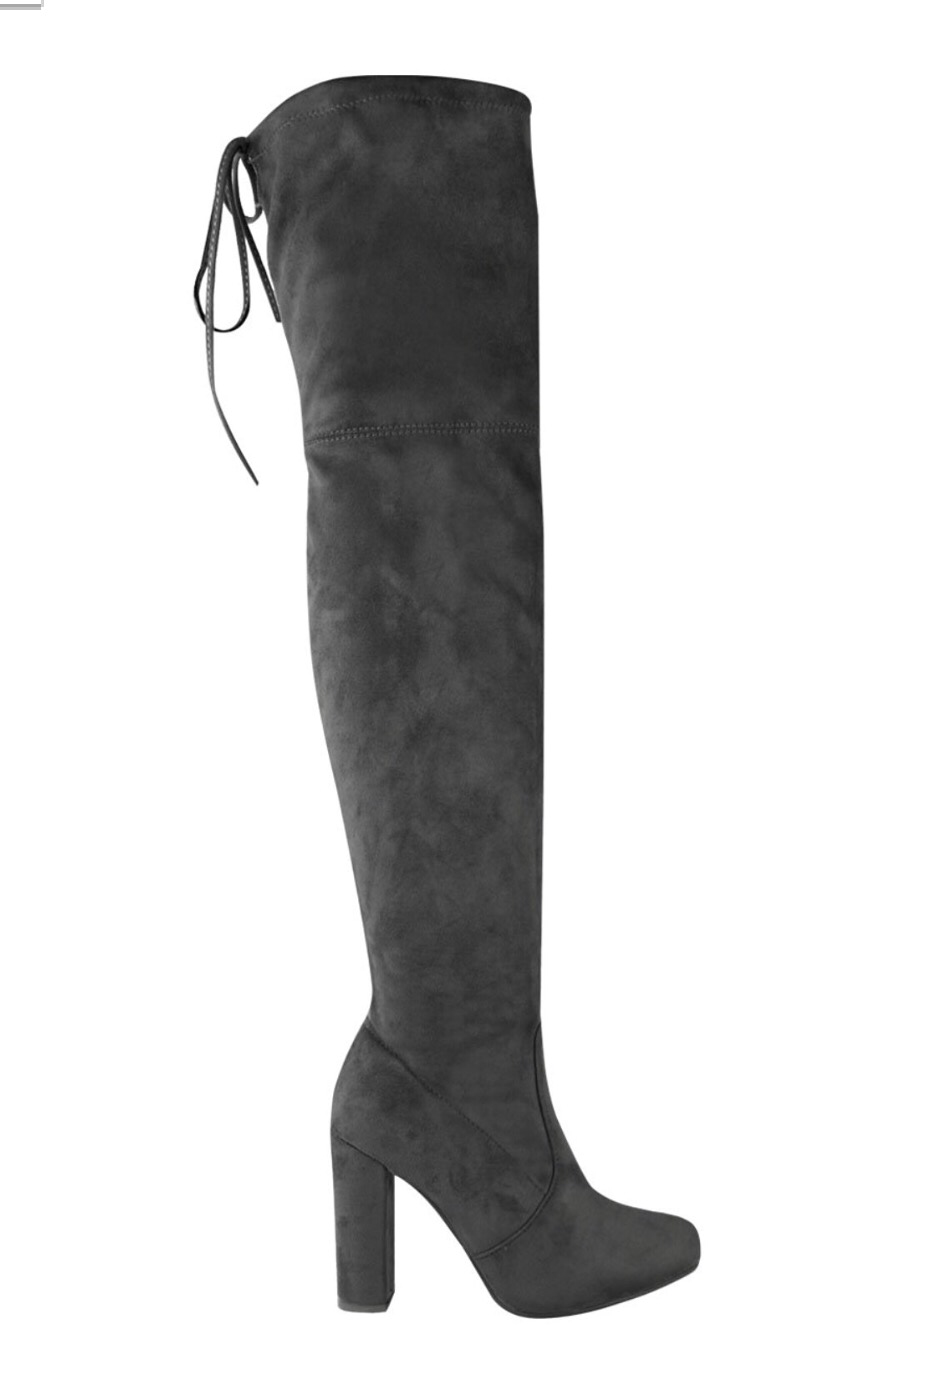 Khaleesi Thigh High Boots- Grey - Hapa Clothing - 3